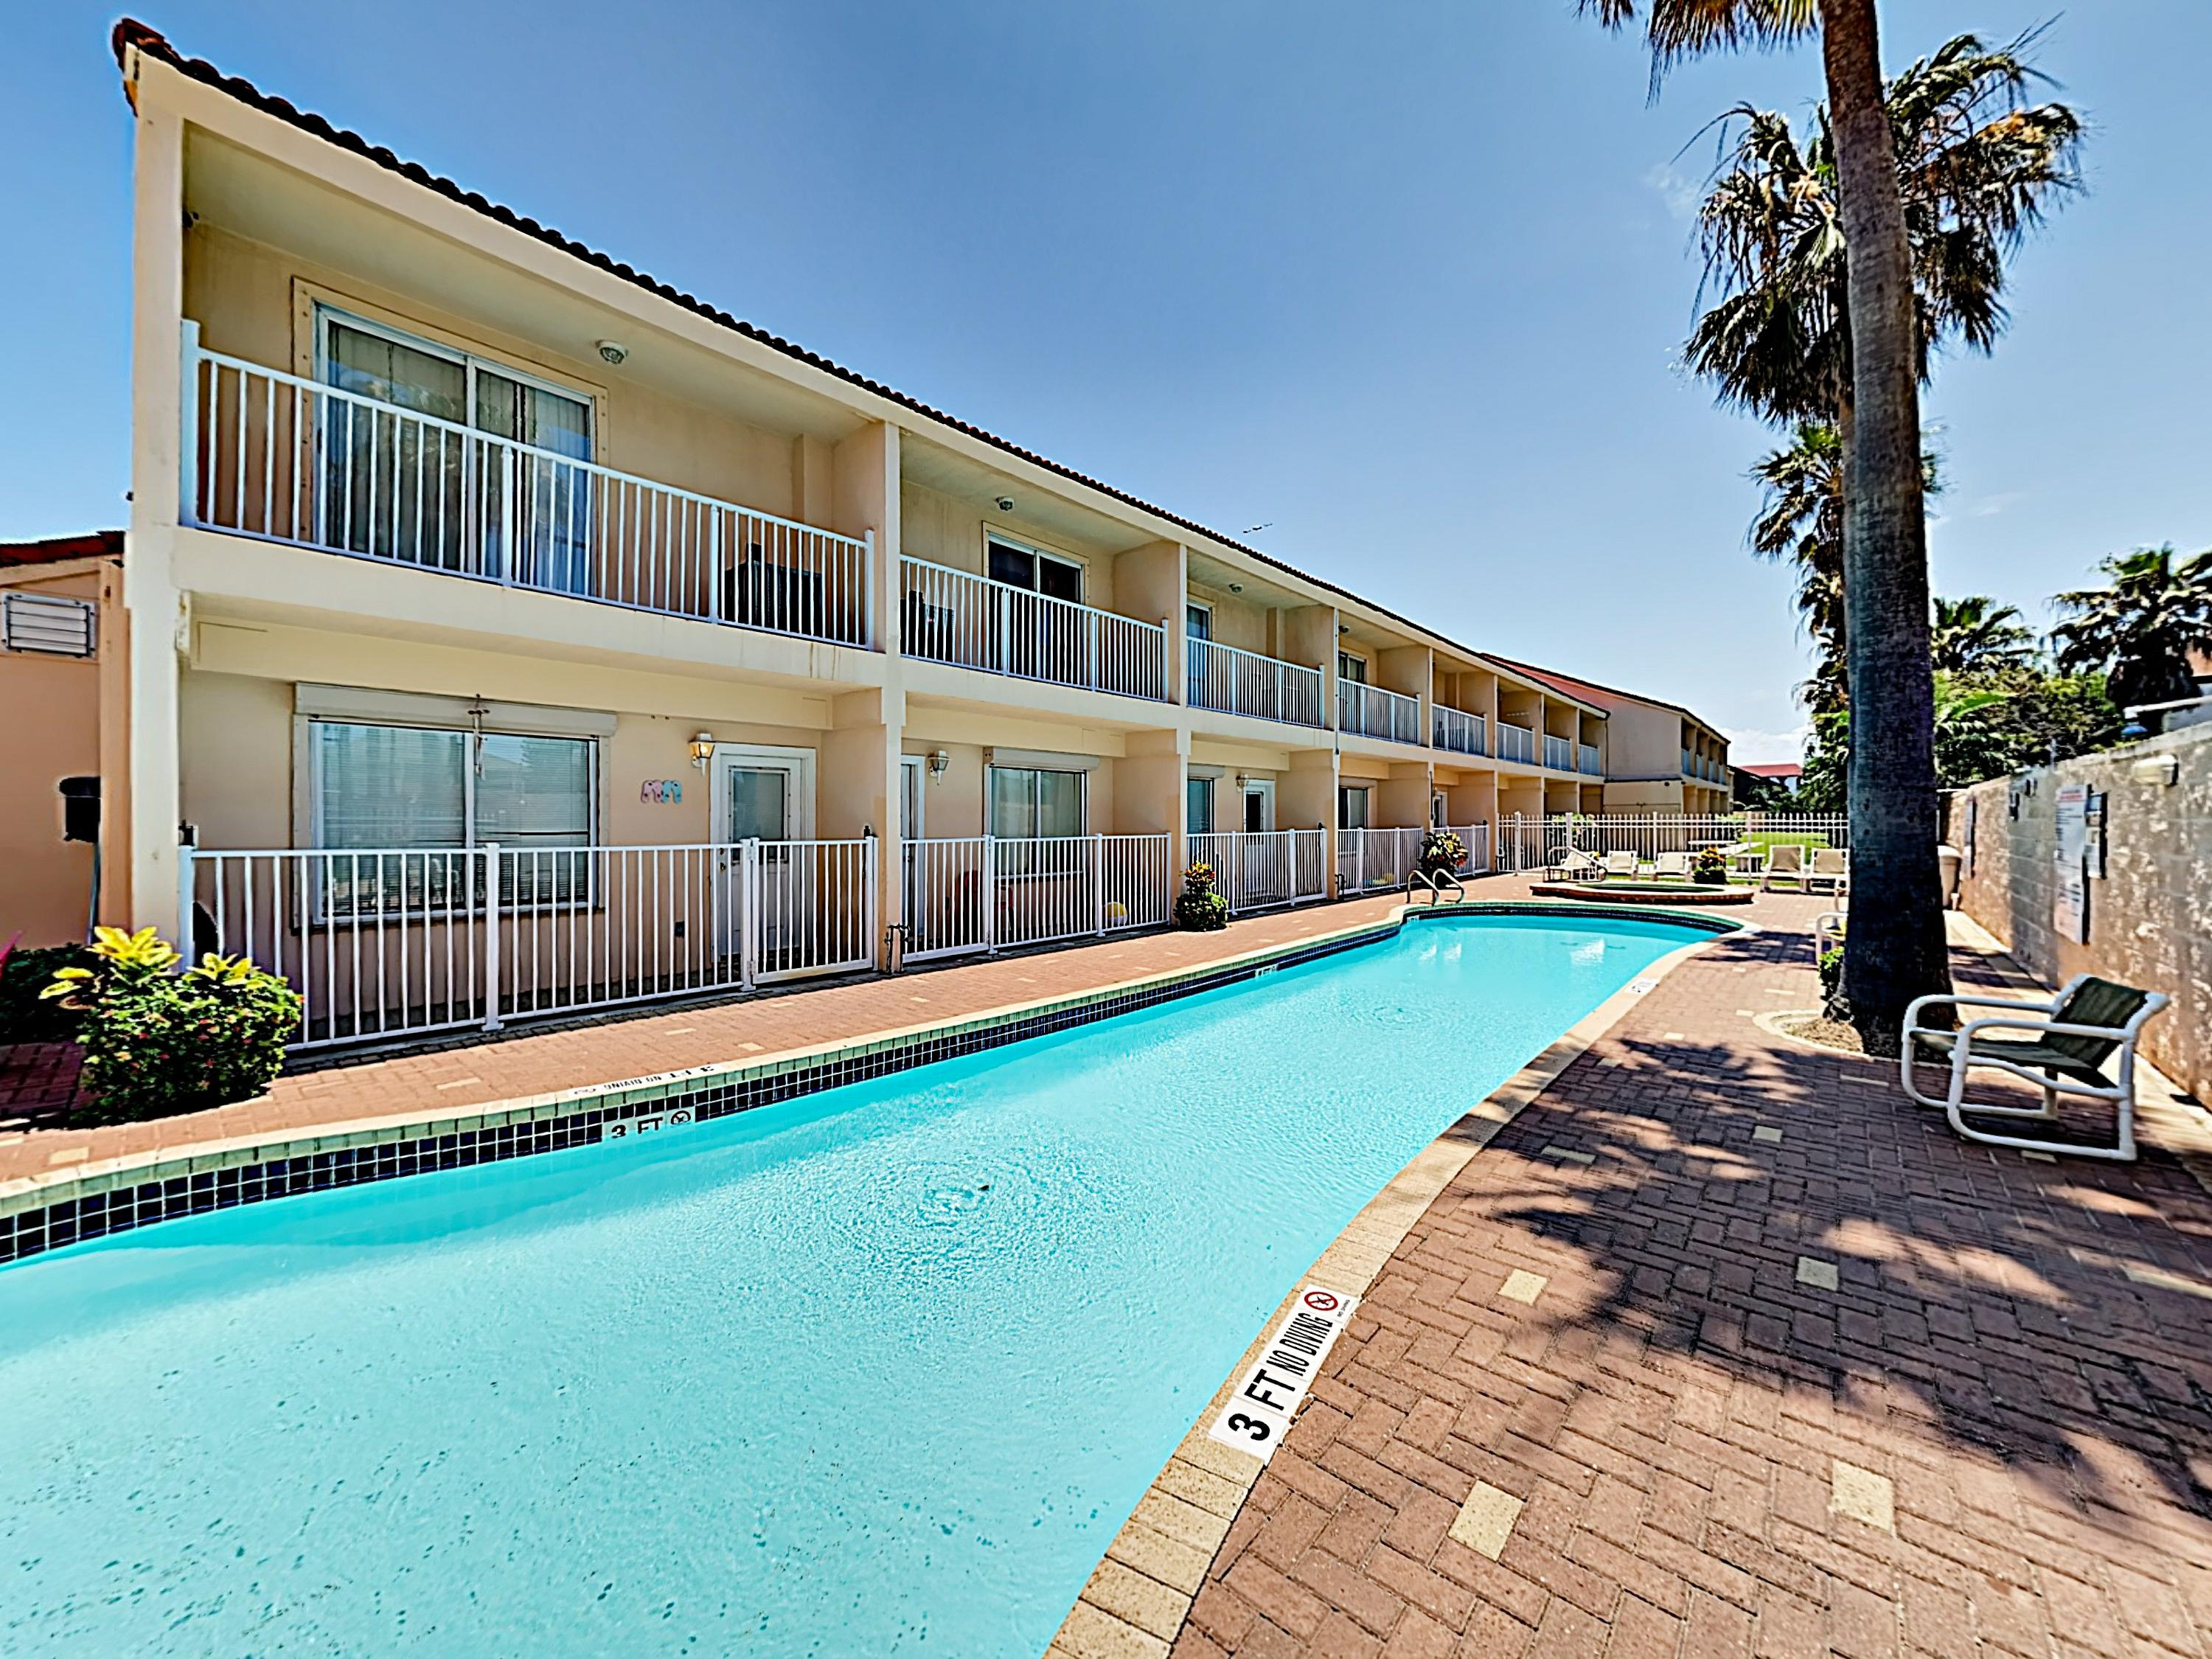 Cool off with a swim in the spacious, resort-style community pool.